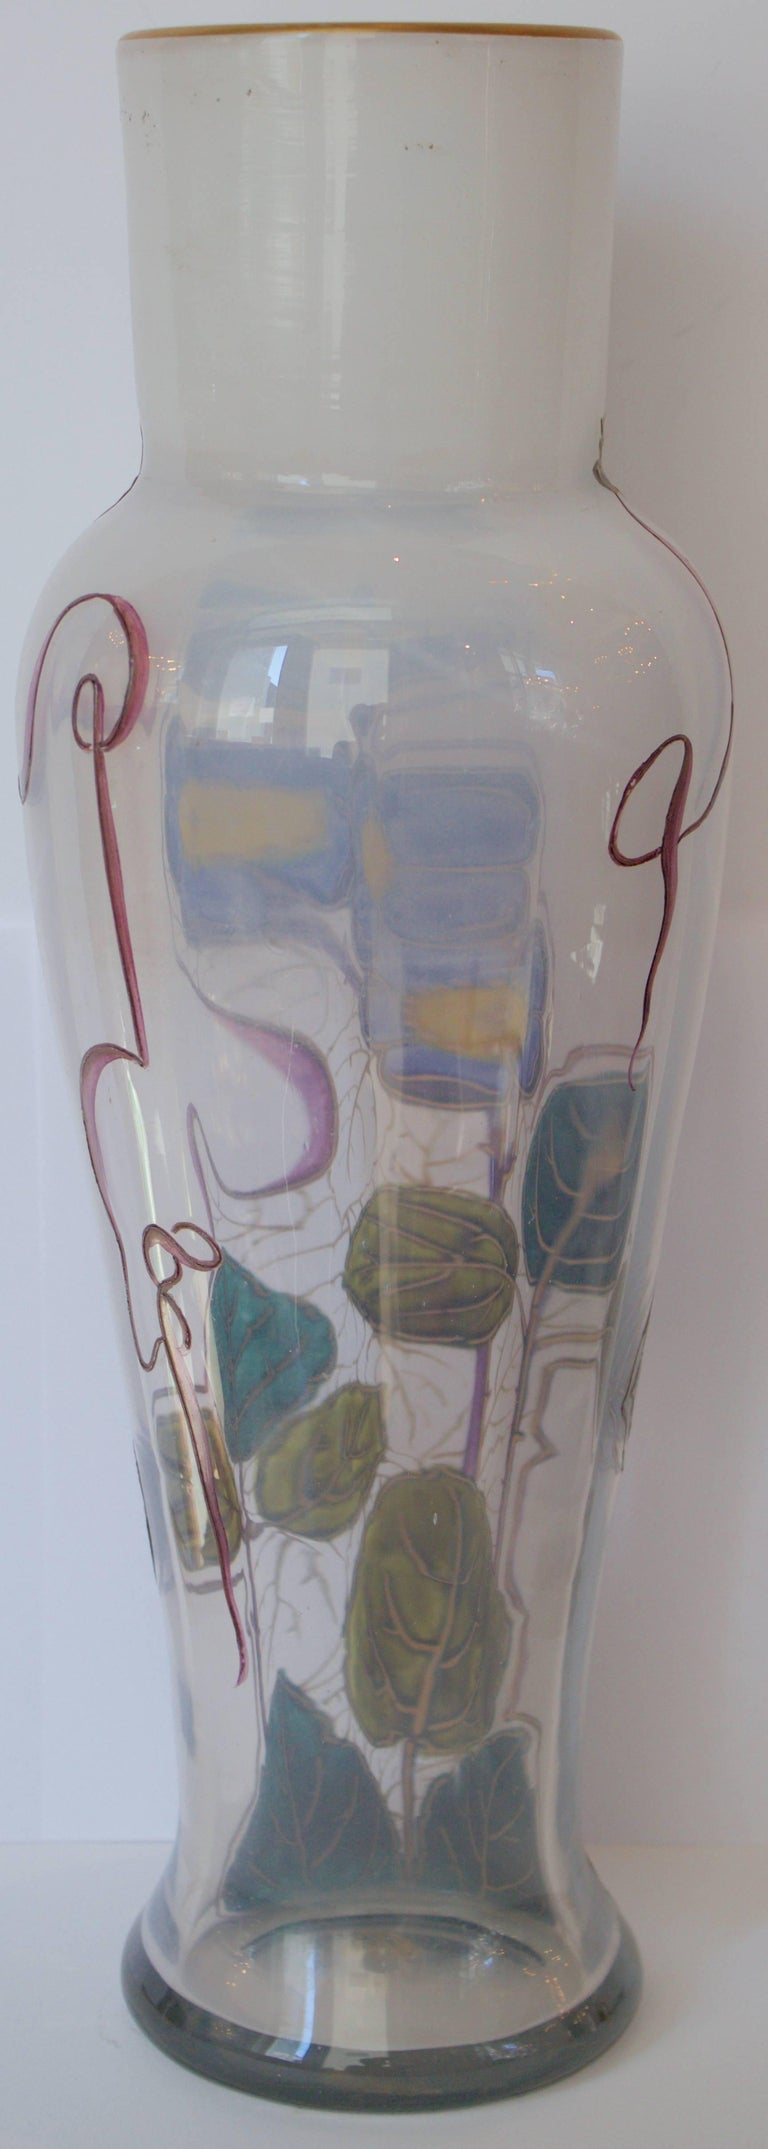 "French 19th Century Glass Vase by Legras Signed "" Montjoye L&Cie"" 4"